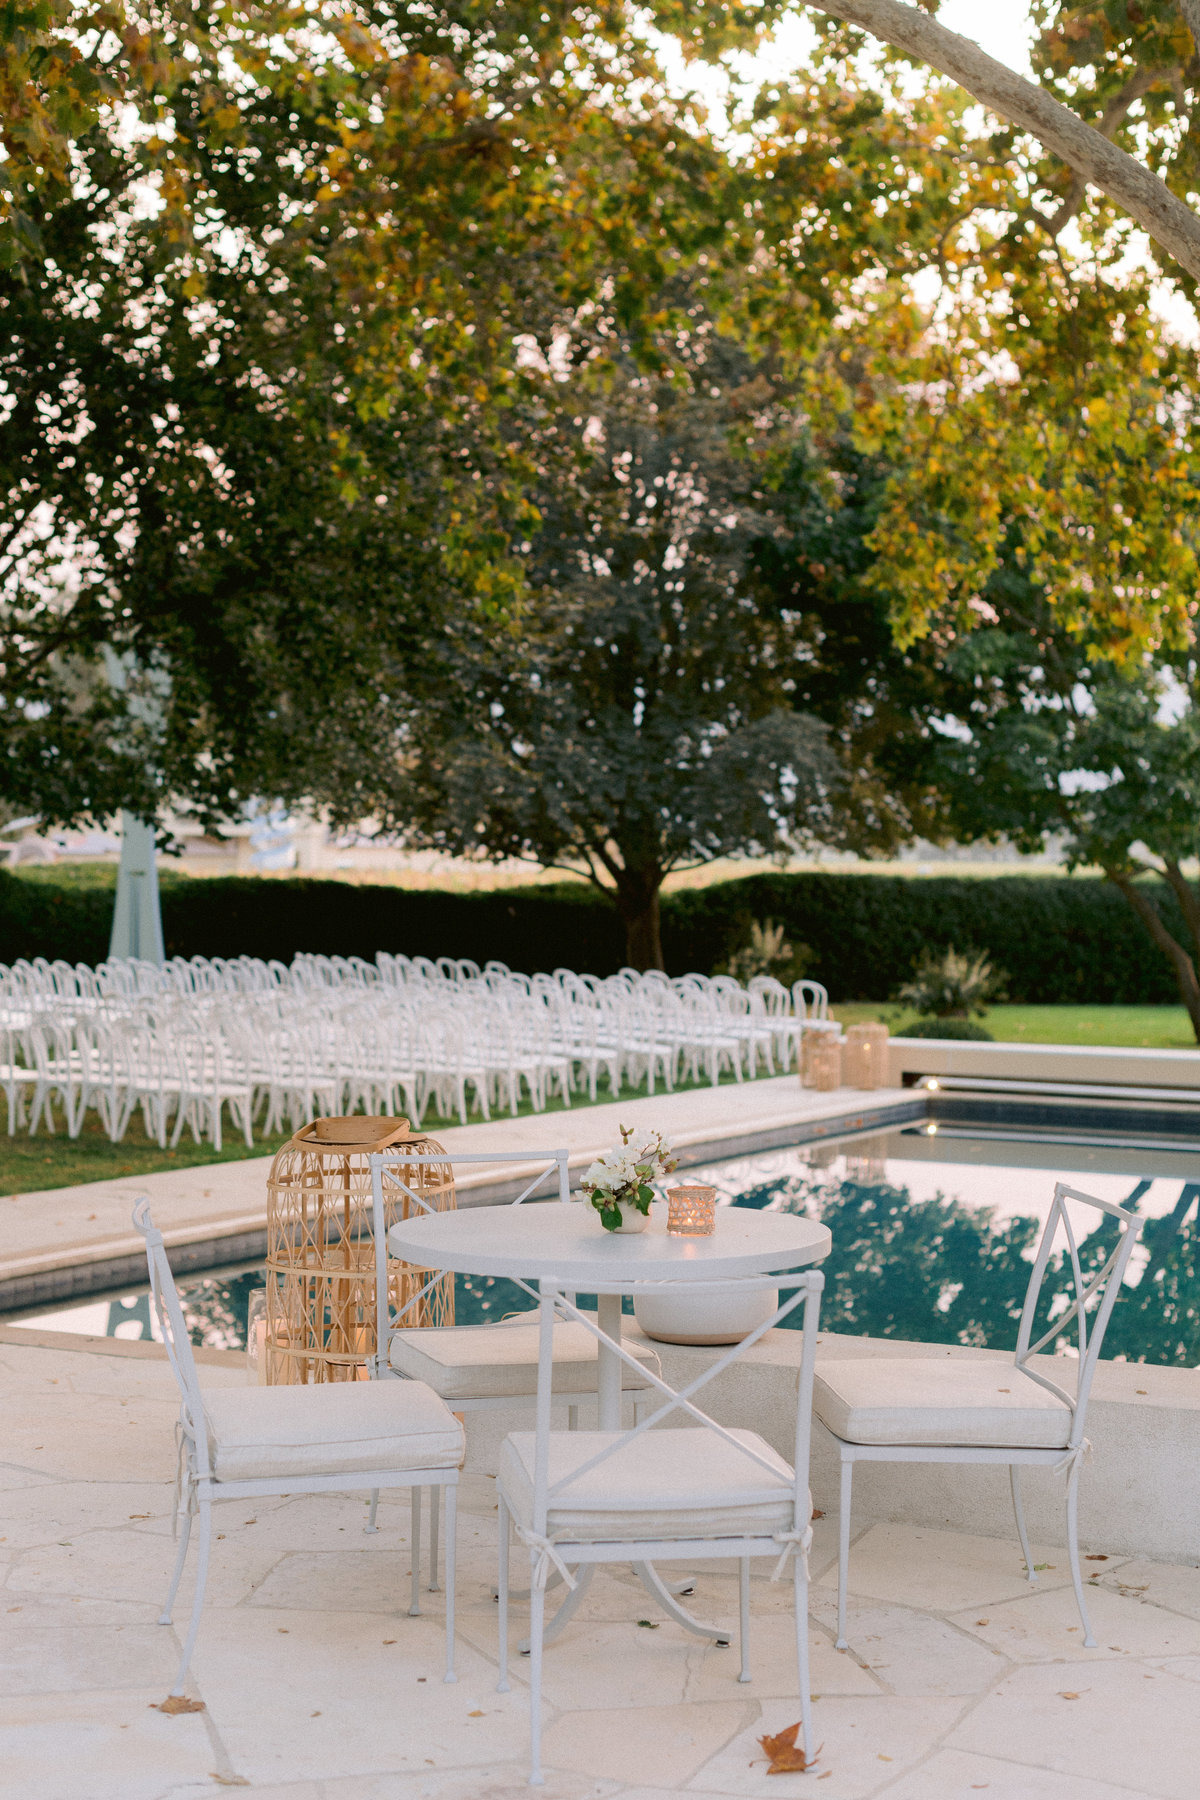 Napa Valley Wedding at Private Residence in Napa Valley by Jenny Schneider Events. Photo by  Melanie Duerkopp.